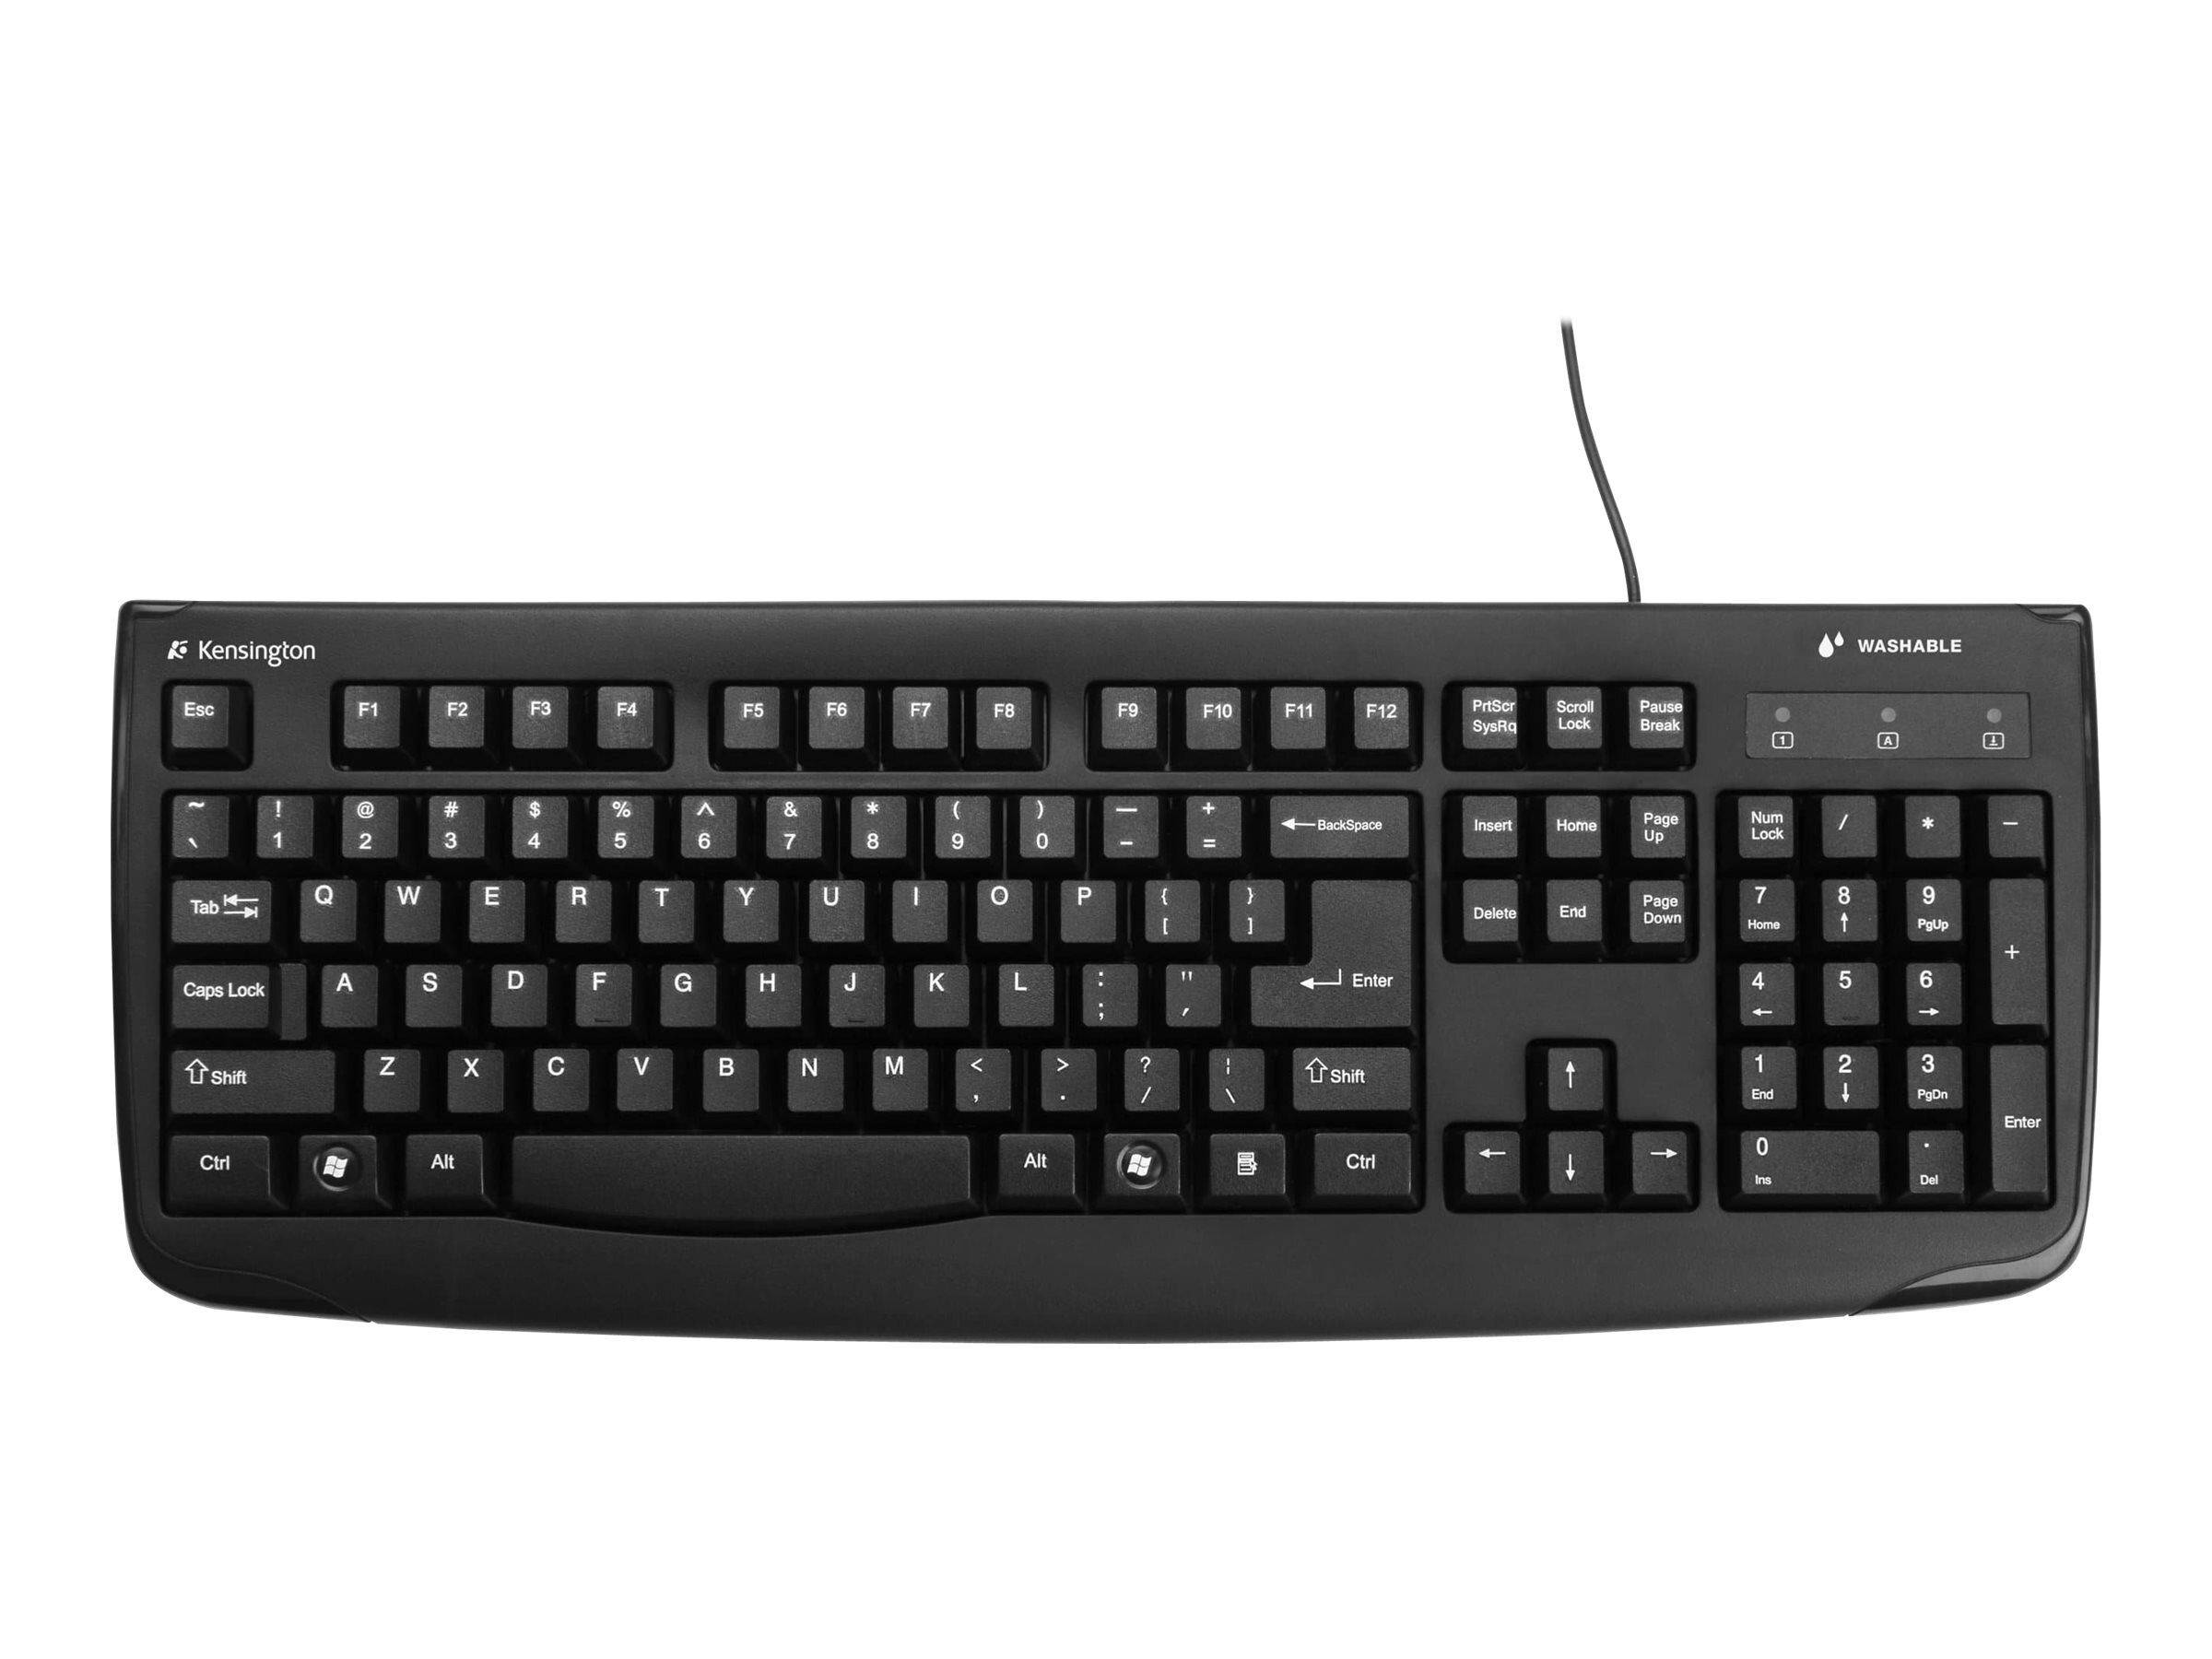 Kensington Pro Fit USB Washable Keyboard, K64407US